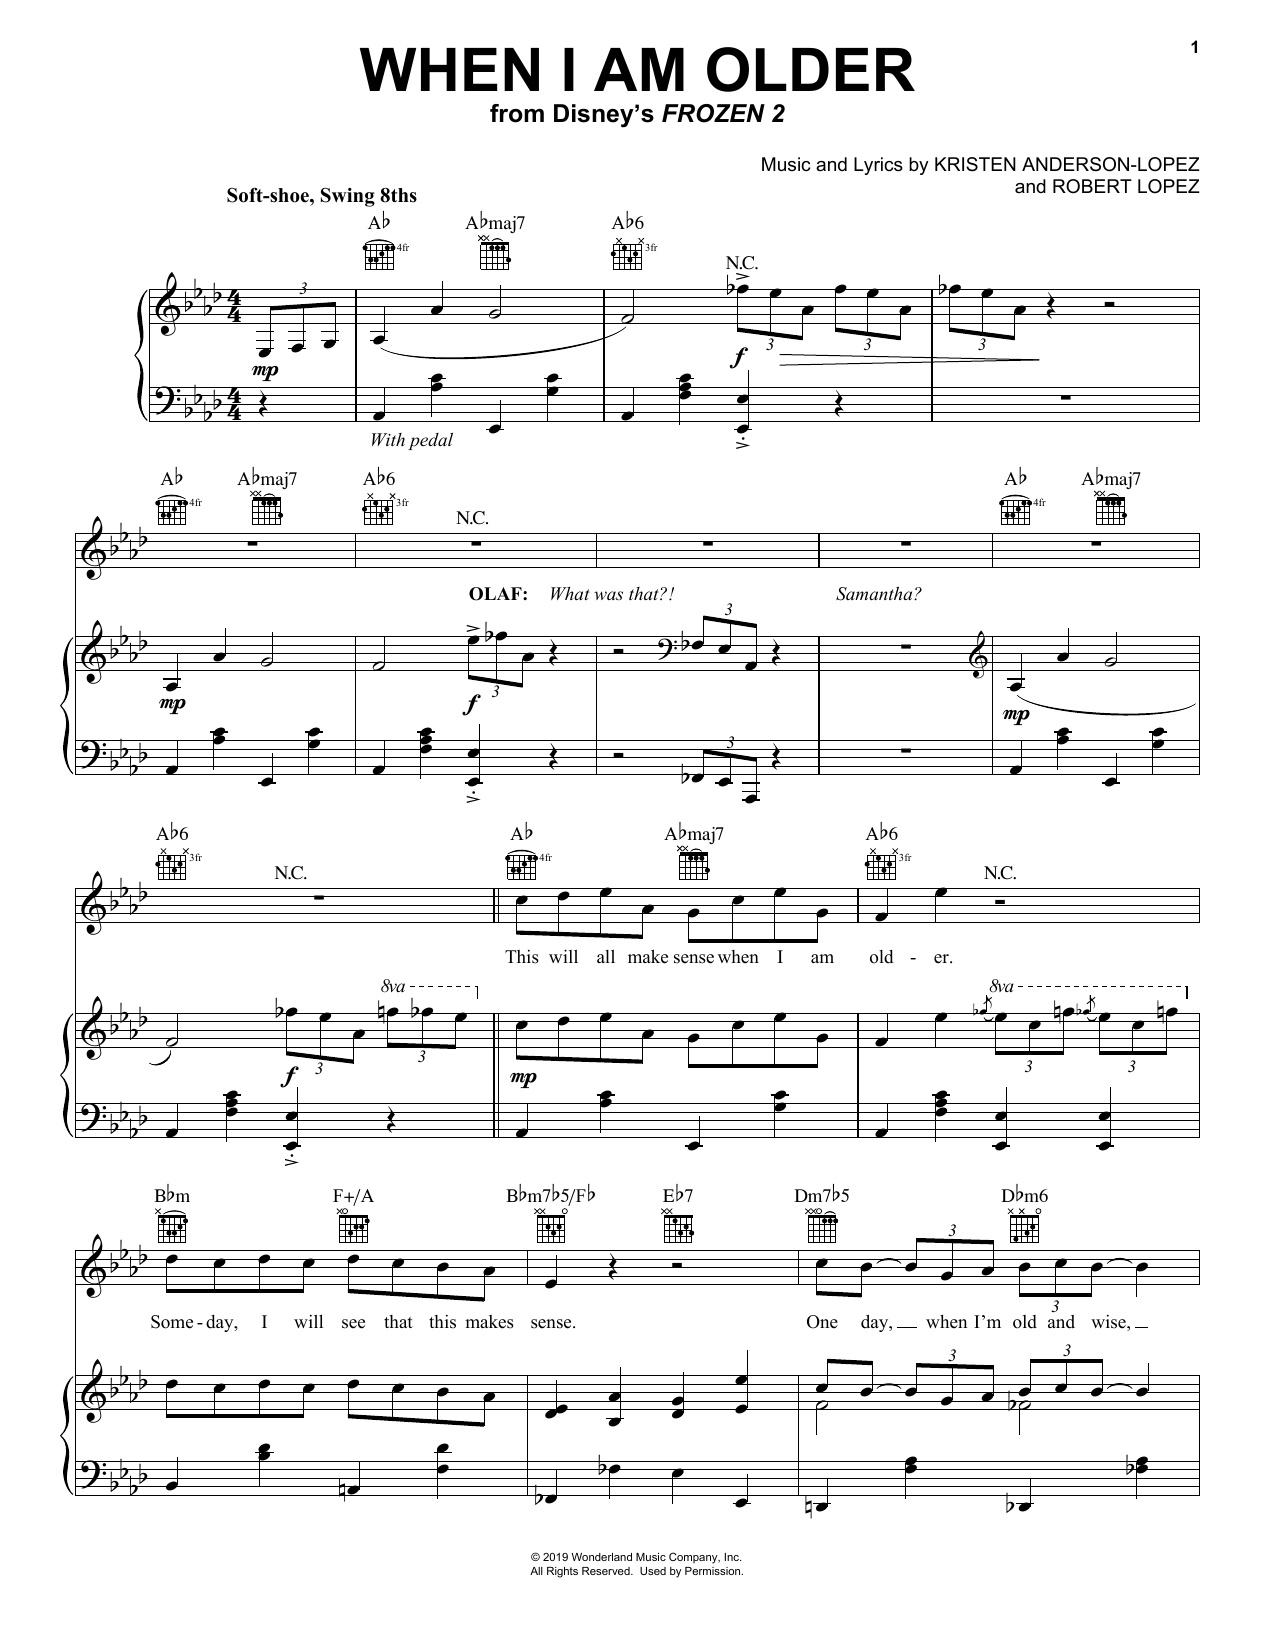 Josh Gad When I Am Older (from Disney's Frozen 2) sheet music notes and chords. Download Printable PDF.